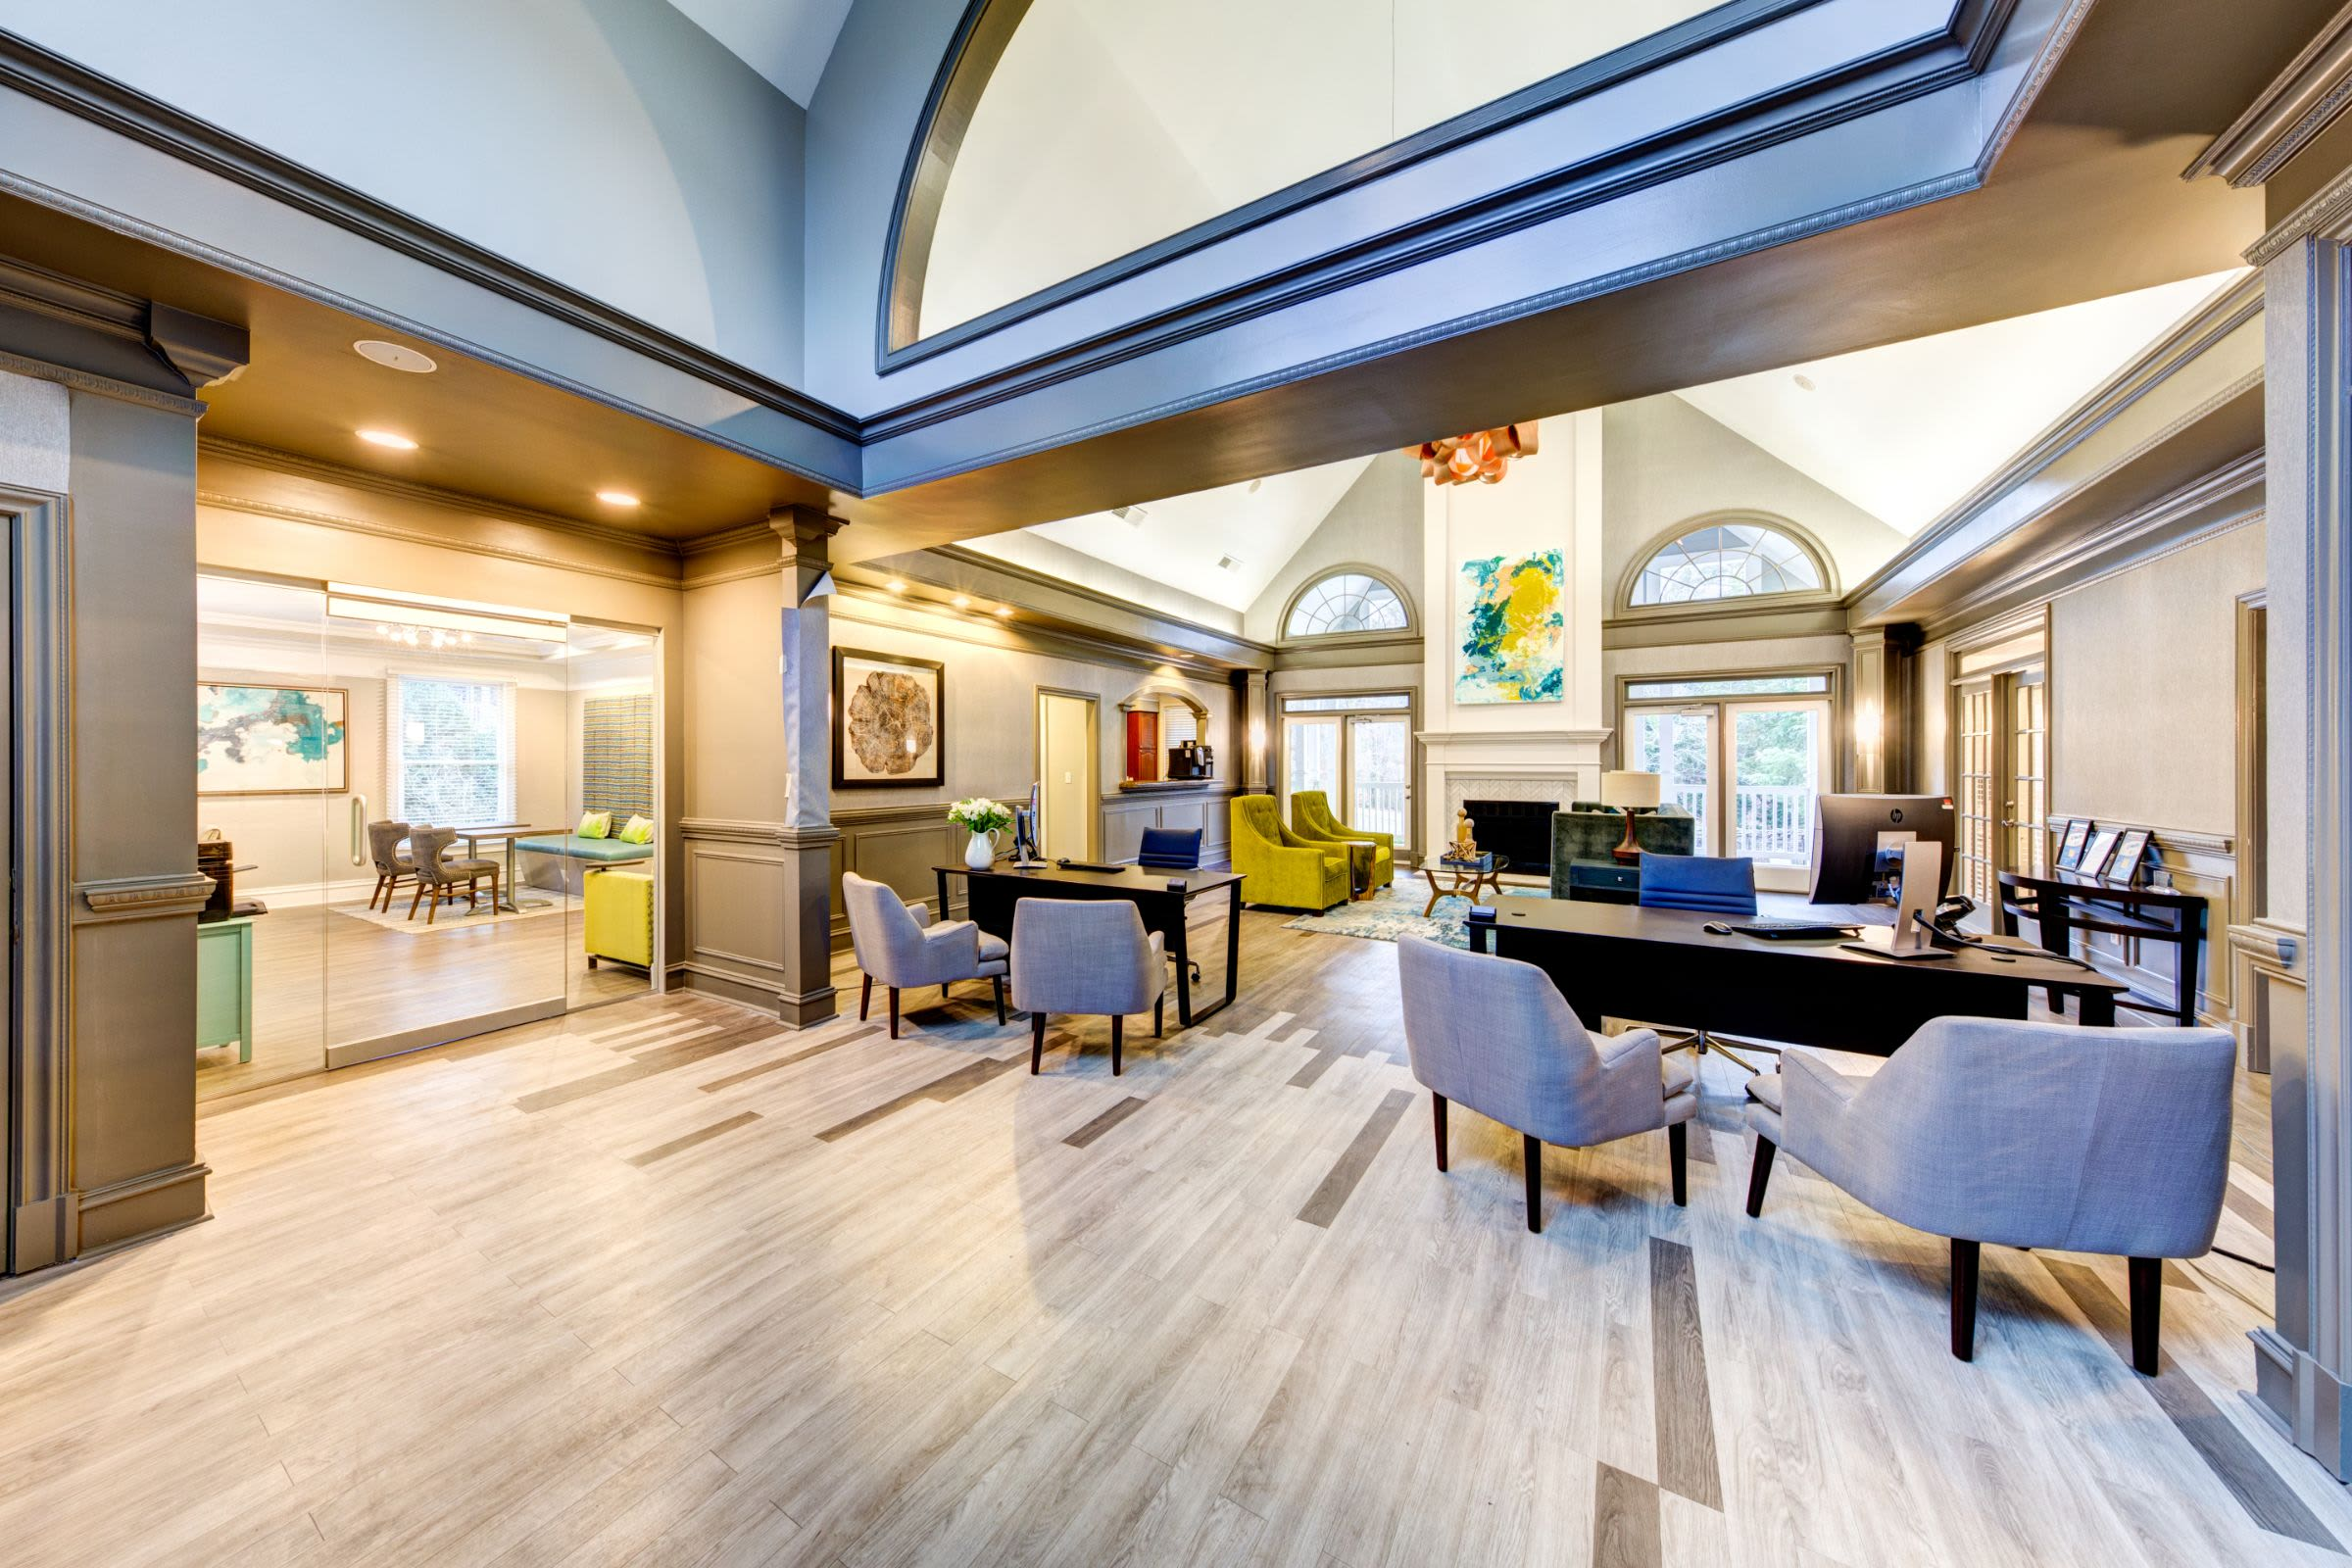 Broad view of the interior of the clubhouse at Marquis on Edwards Mill in Raleigh, North Carolina